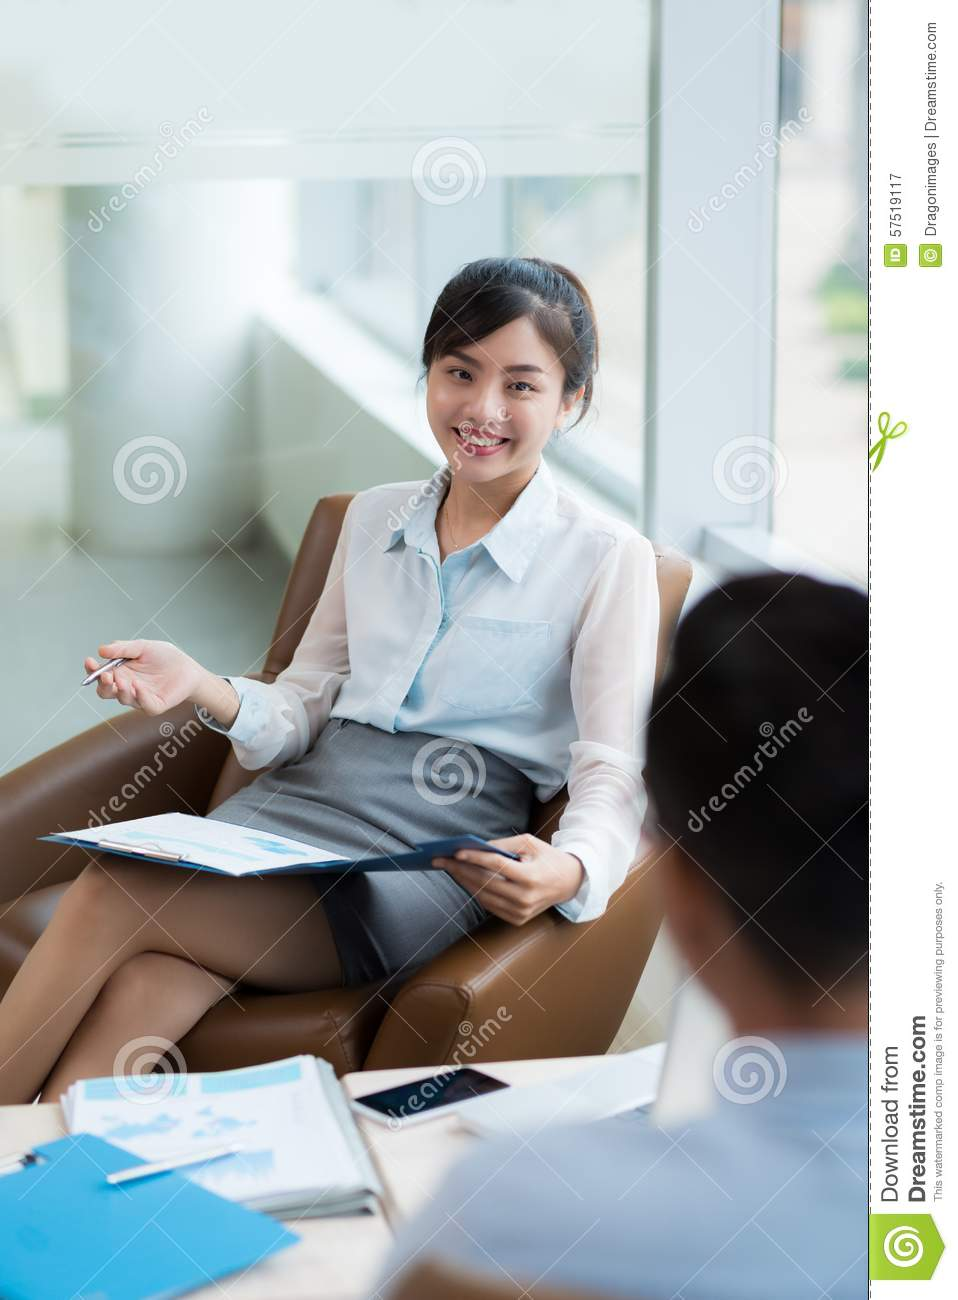 Consulting Client Stock Photo Image 57519117